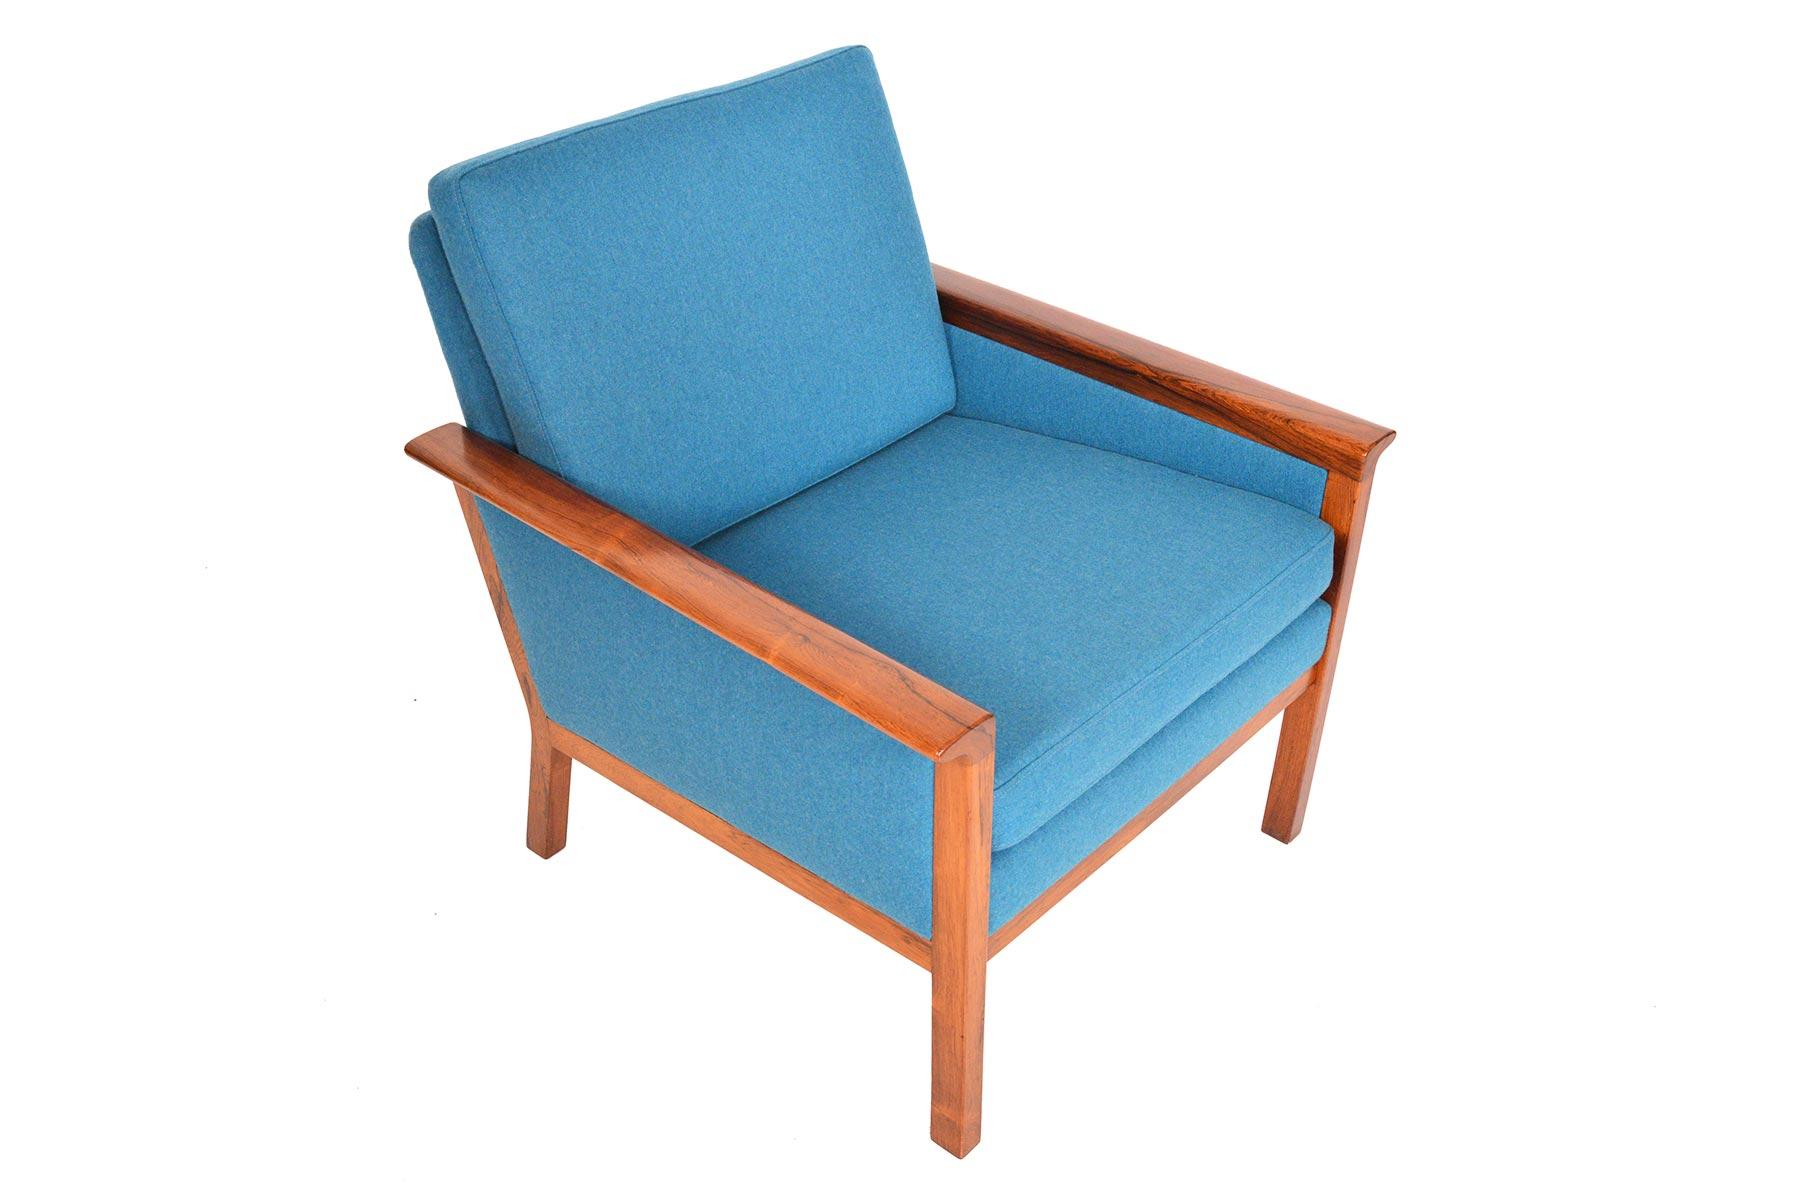 Peachy Danish Modern Cerulean Blue Lounge Chair In Brazilian Gmtry Best Dining Table And Chair Ideas Images Gmtryco